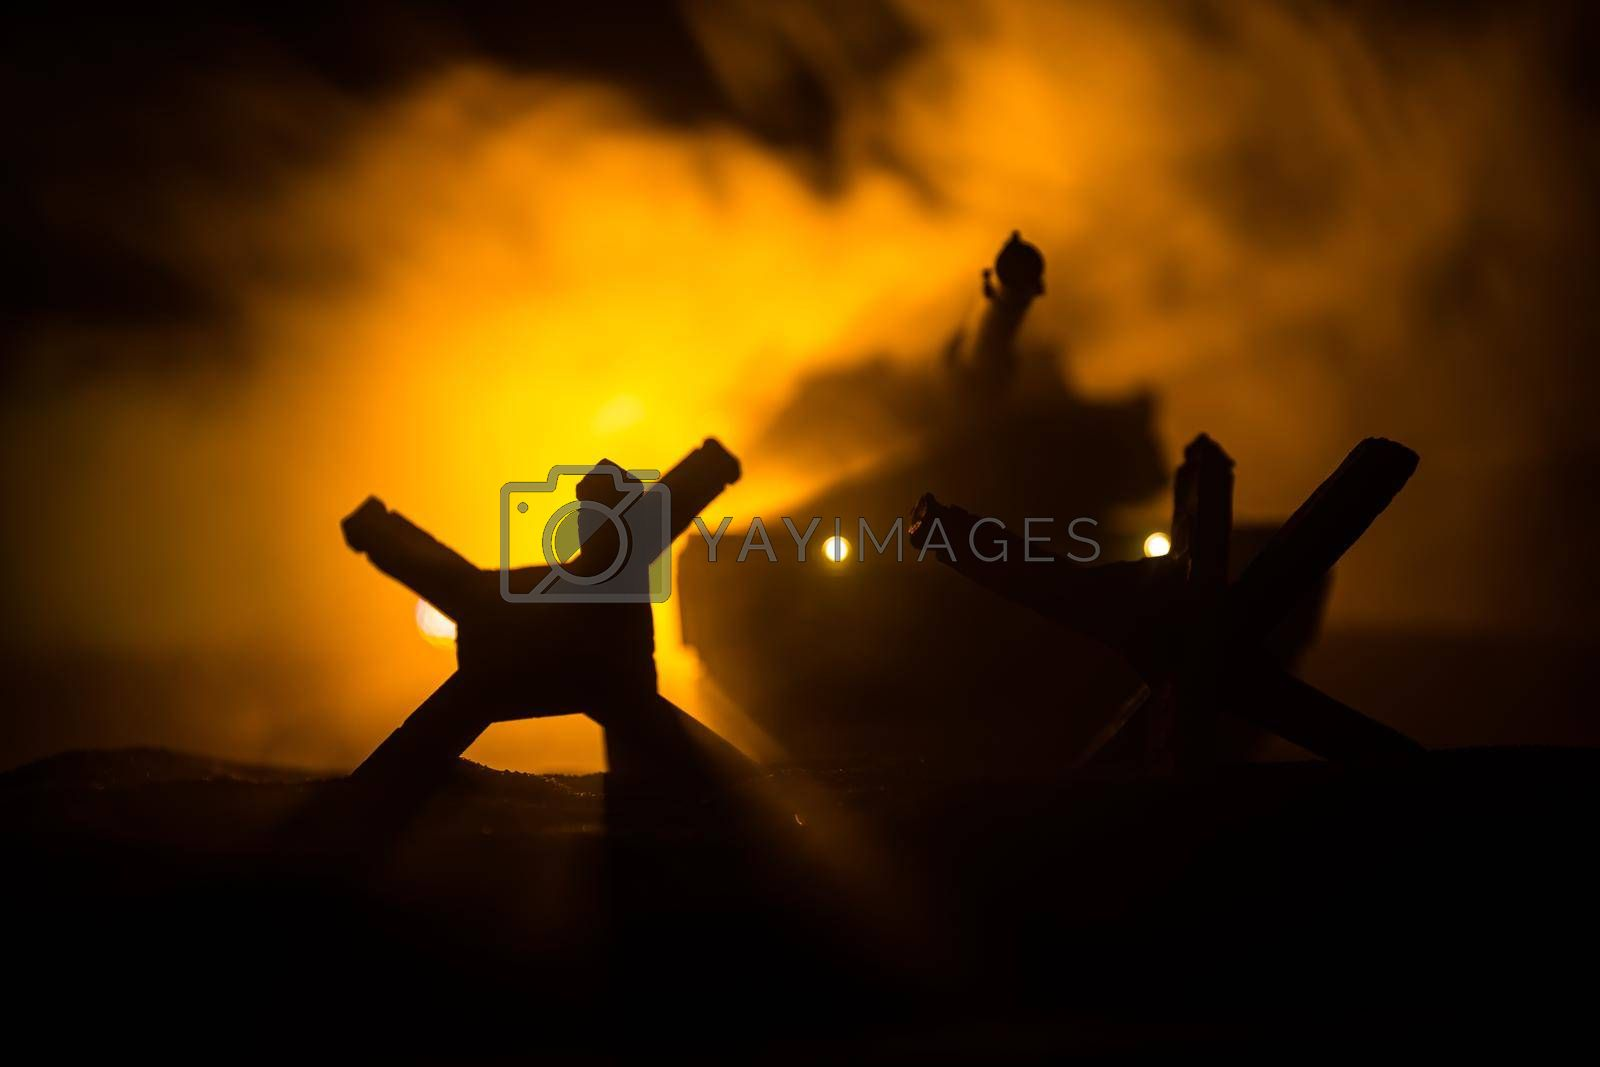 Royalty free image of War Concept. Armored vehicle silhouette fighting scene on war foggy sky background at night. American tank ready to fight. by Zeferli